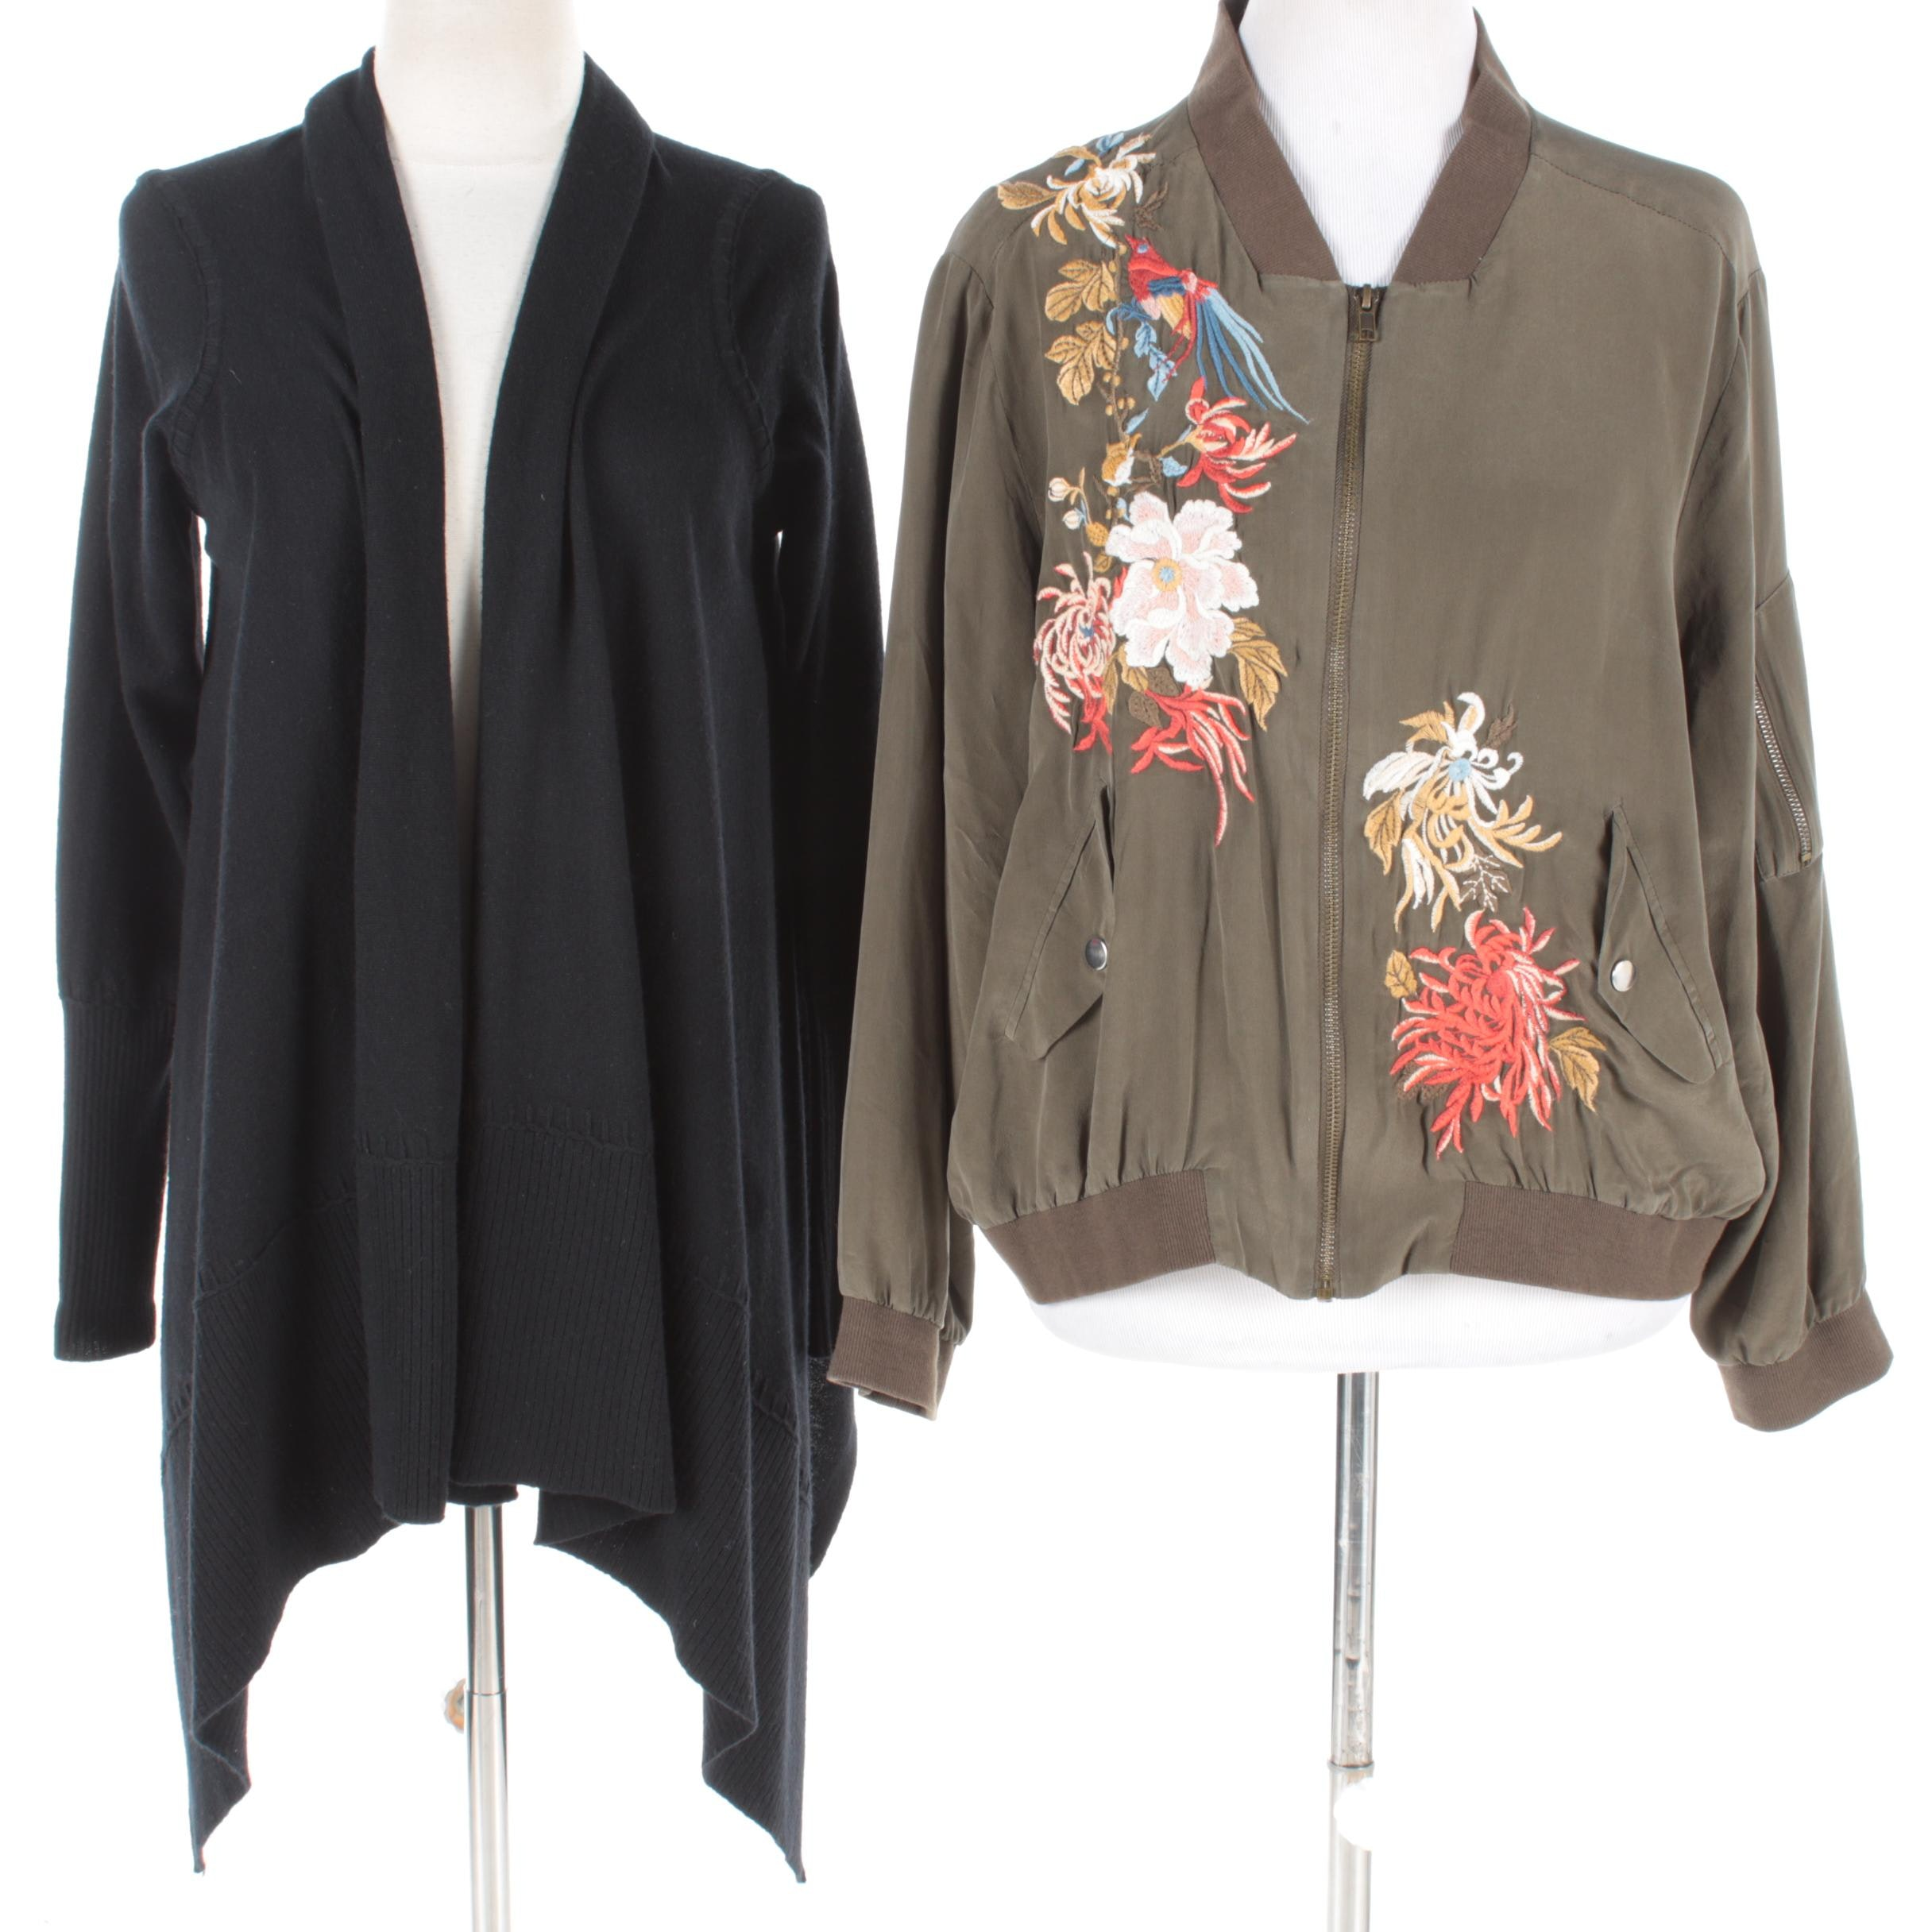 Women's Embroidered Zip-Up Jacket and Black Cashmere Open Front Cardigan